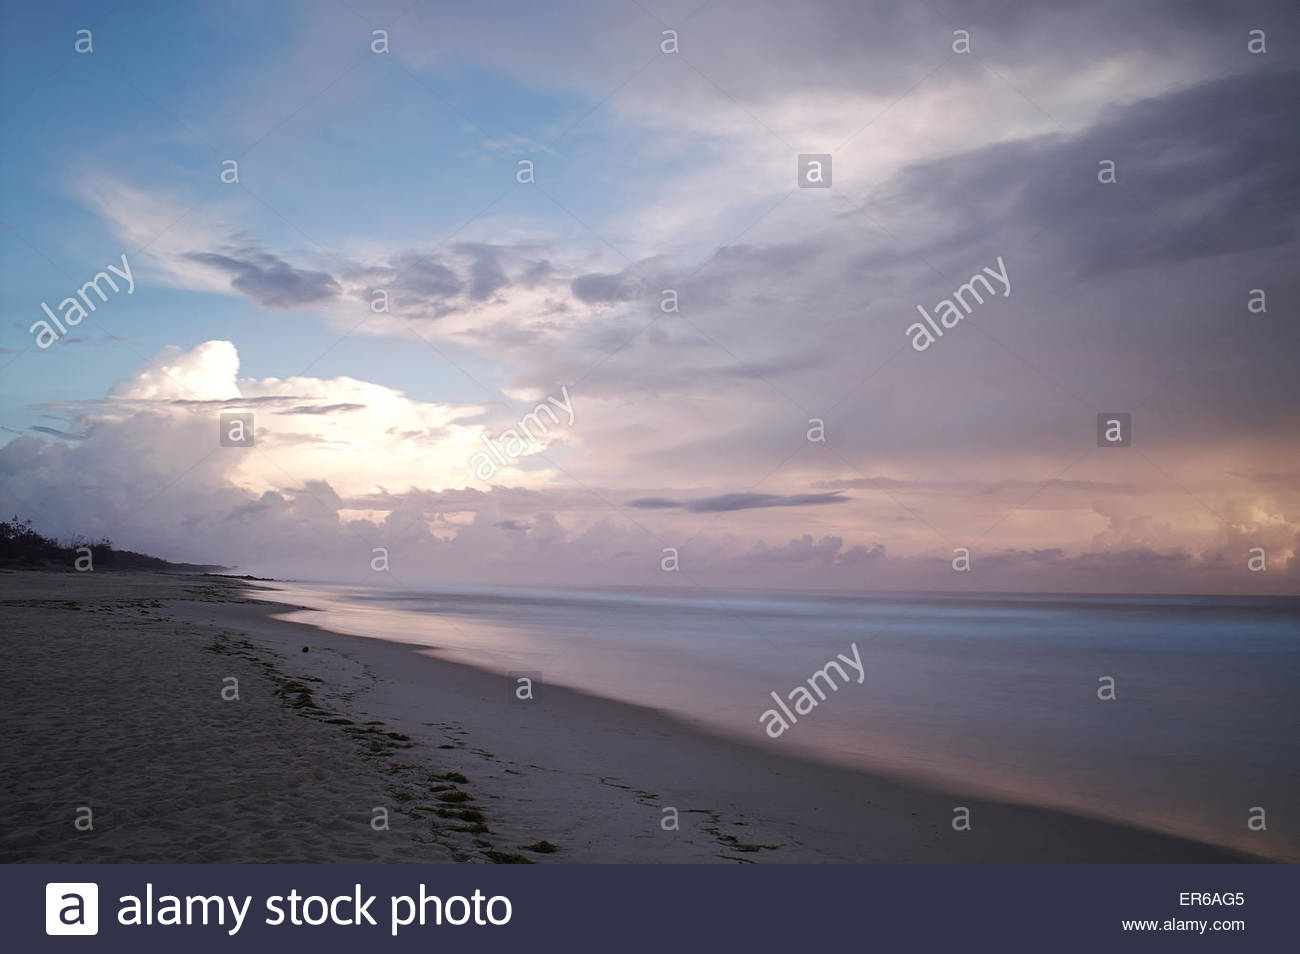 New Year's Day morning 2015, looking north up the beach as the sun rises over the Pacific Ocean from behind - Stock Image